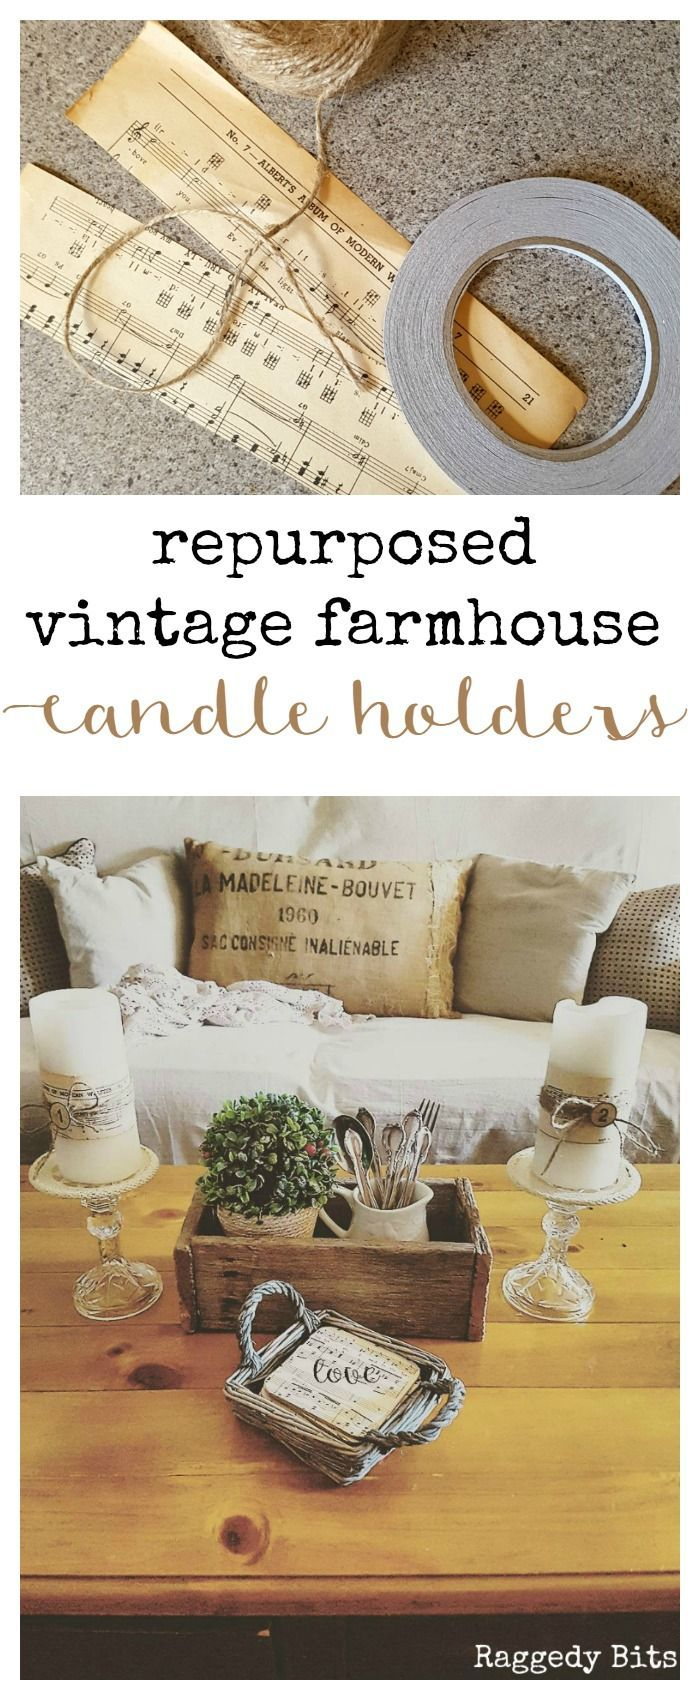 188 best farmhouse decor images on pinterest farmhouse style repurposed vintage farmhouse candle holders decor craftseasy craftsdiy home